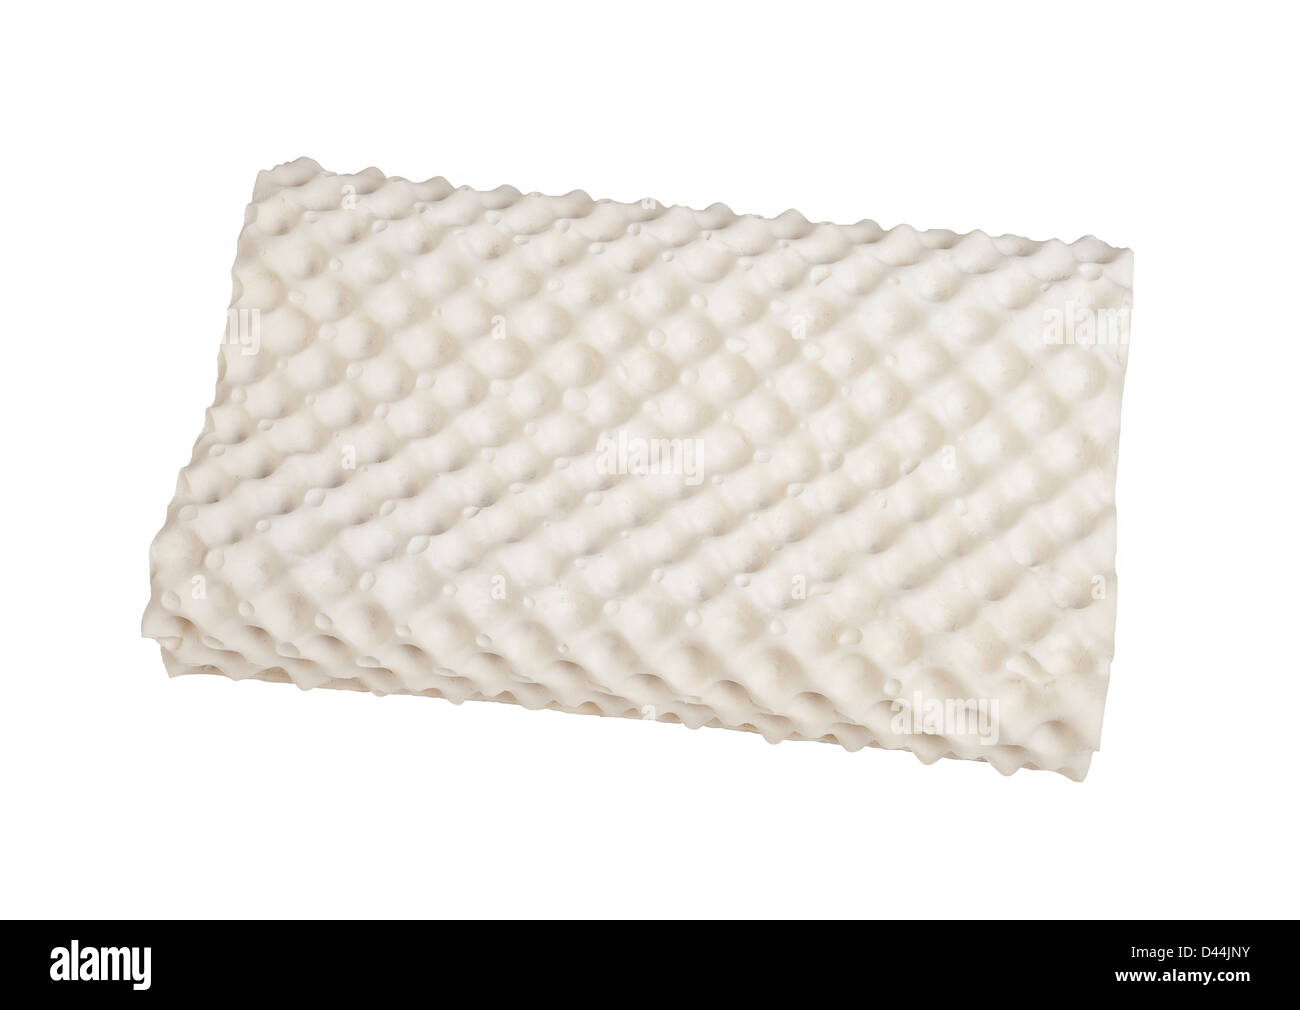 Latex natural material inside the hygienic pillow to protects mite dust and support your neck - Stock Image